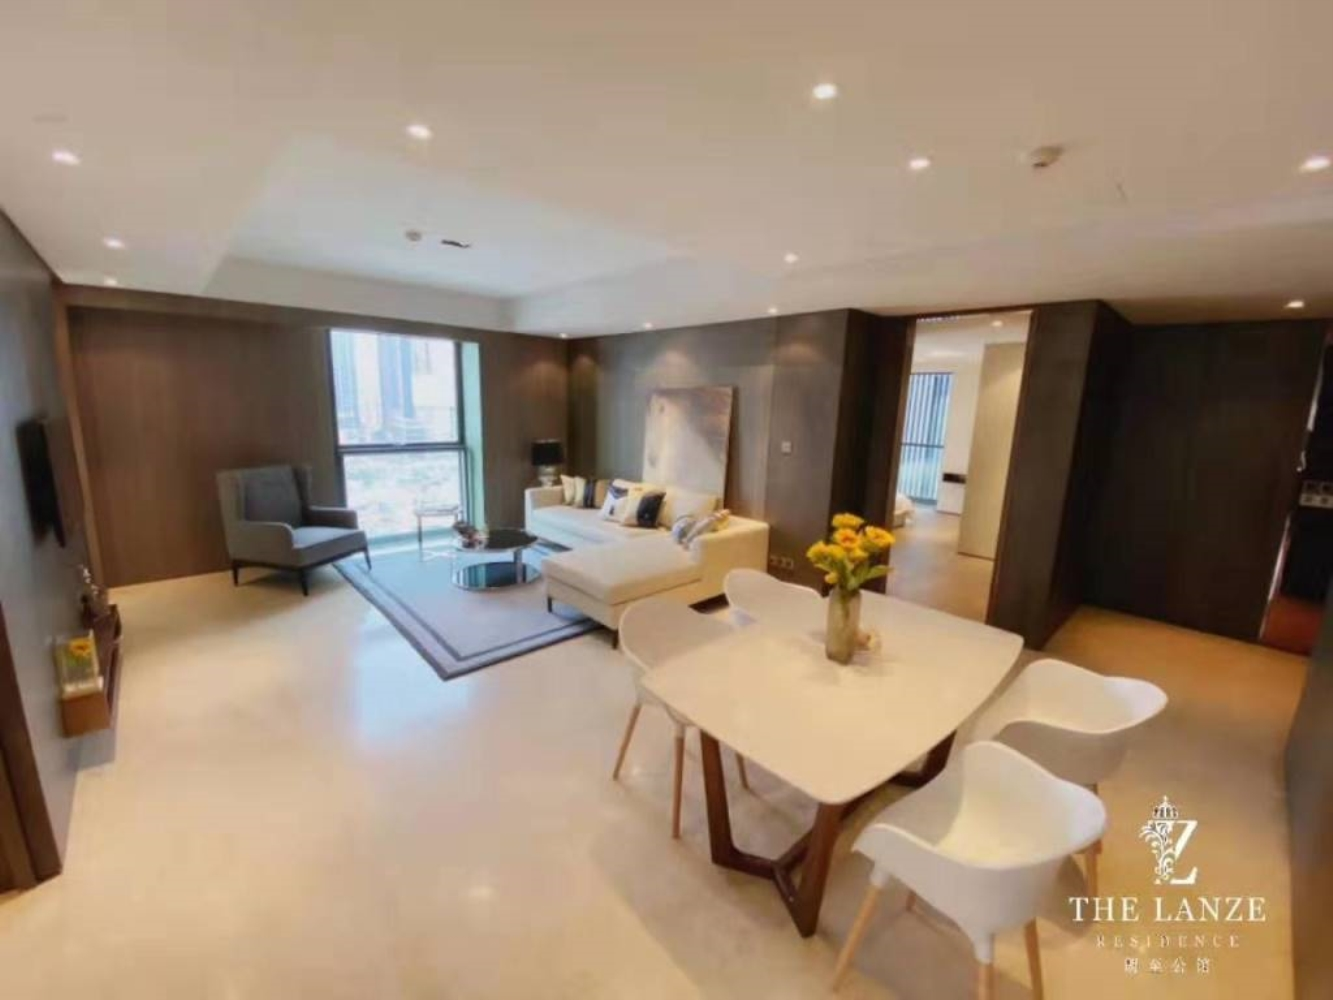 Luxury 3br in New Building Bund Area with river view